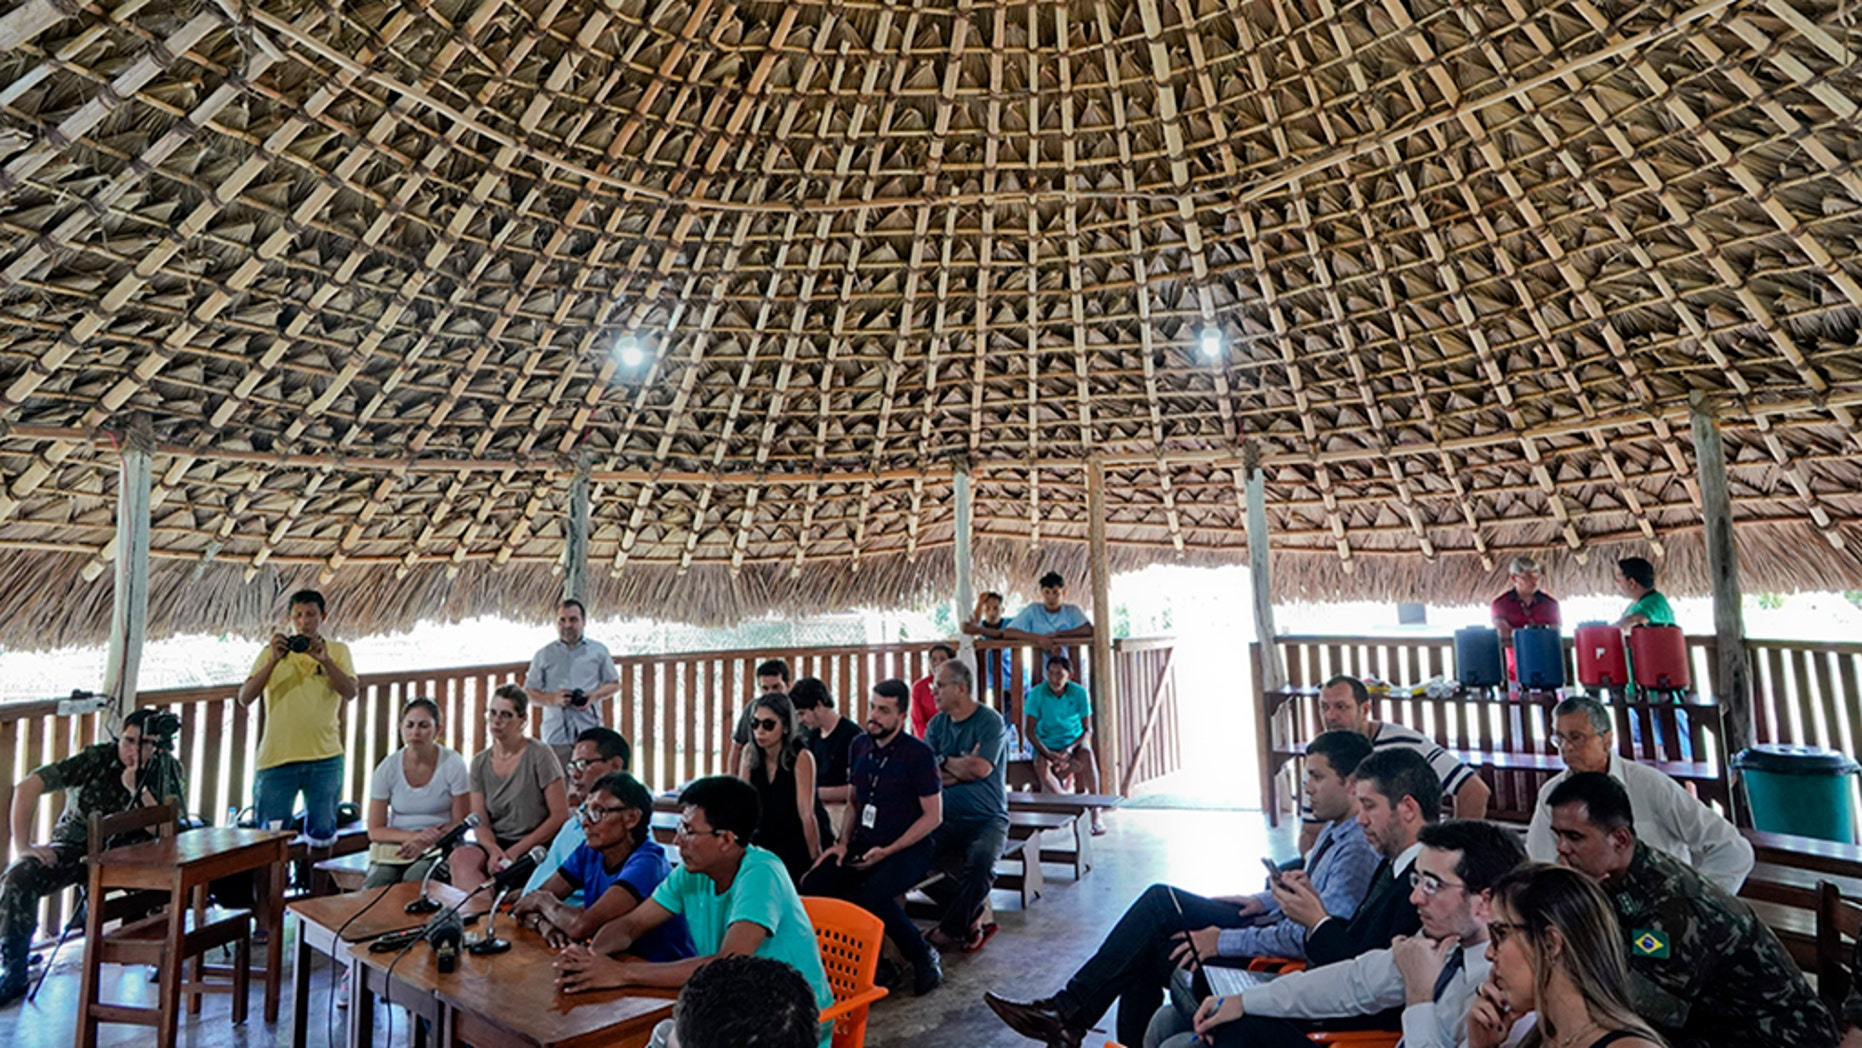 "Temehe Tomas Waimiri, sitting center left and wearing blue shirt and glasses, gives testimony about alleged crimes committed by the Brazilian dictatorship in the 1970s, during a hearing inside a traditional ""maloca"" indigenous hut, at the Waimiri-Atroari reserve in Amazon state, Wednesday, Feb. 27, 2019.  (AP Photo/Victor R. Caivano)"